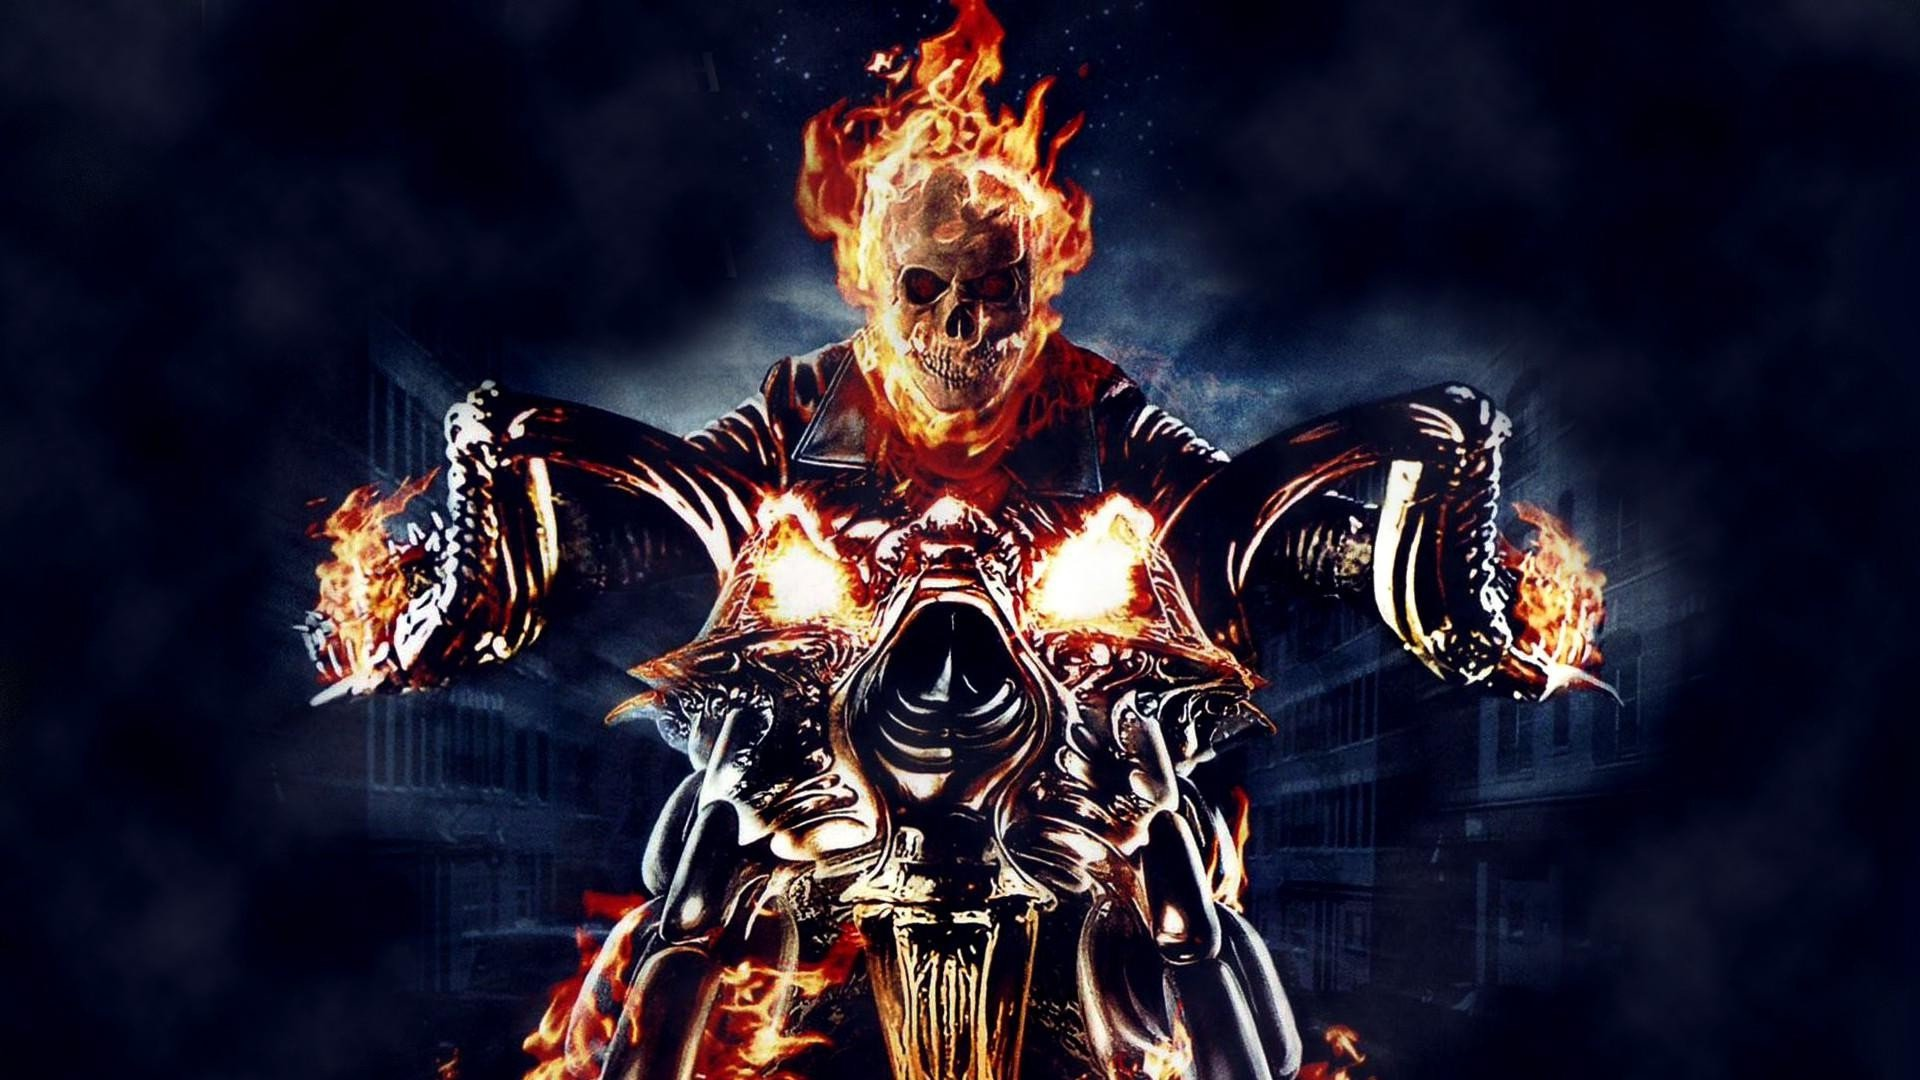 1280x1024 Ghost Rider 1280x1024 Resolution Hd 4k Wallpapers Images Backgrounds Photos And Pictures